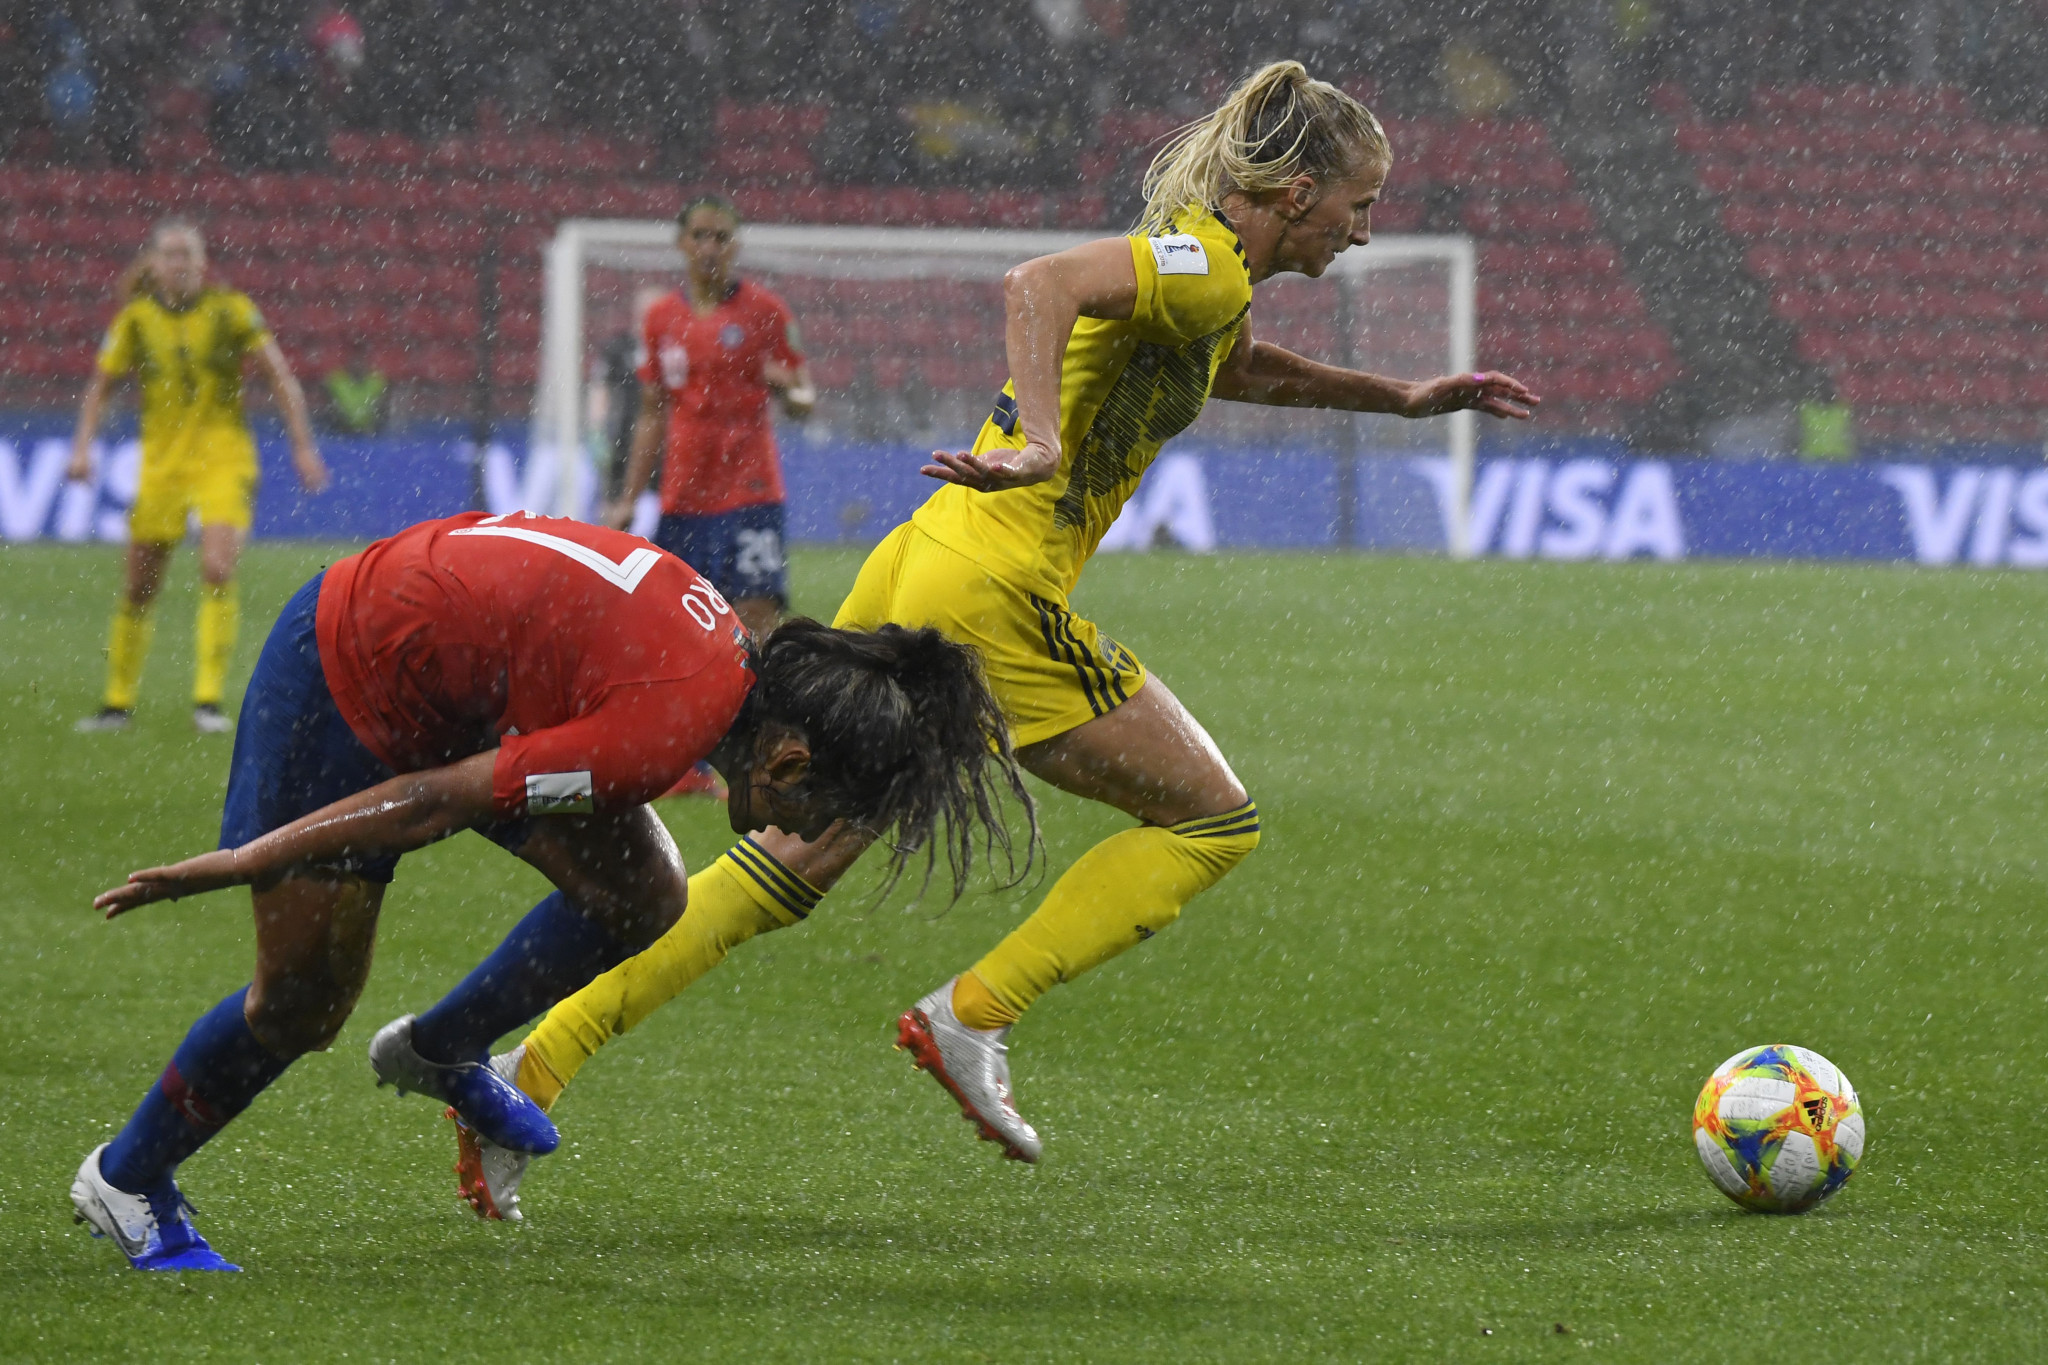 The referee halted the game in the 72nd minute due to the weather conditions ©Getty Images